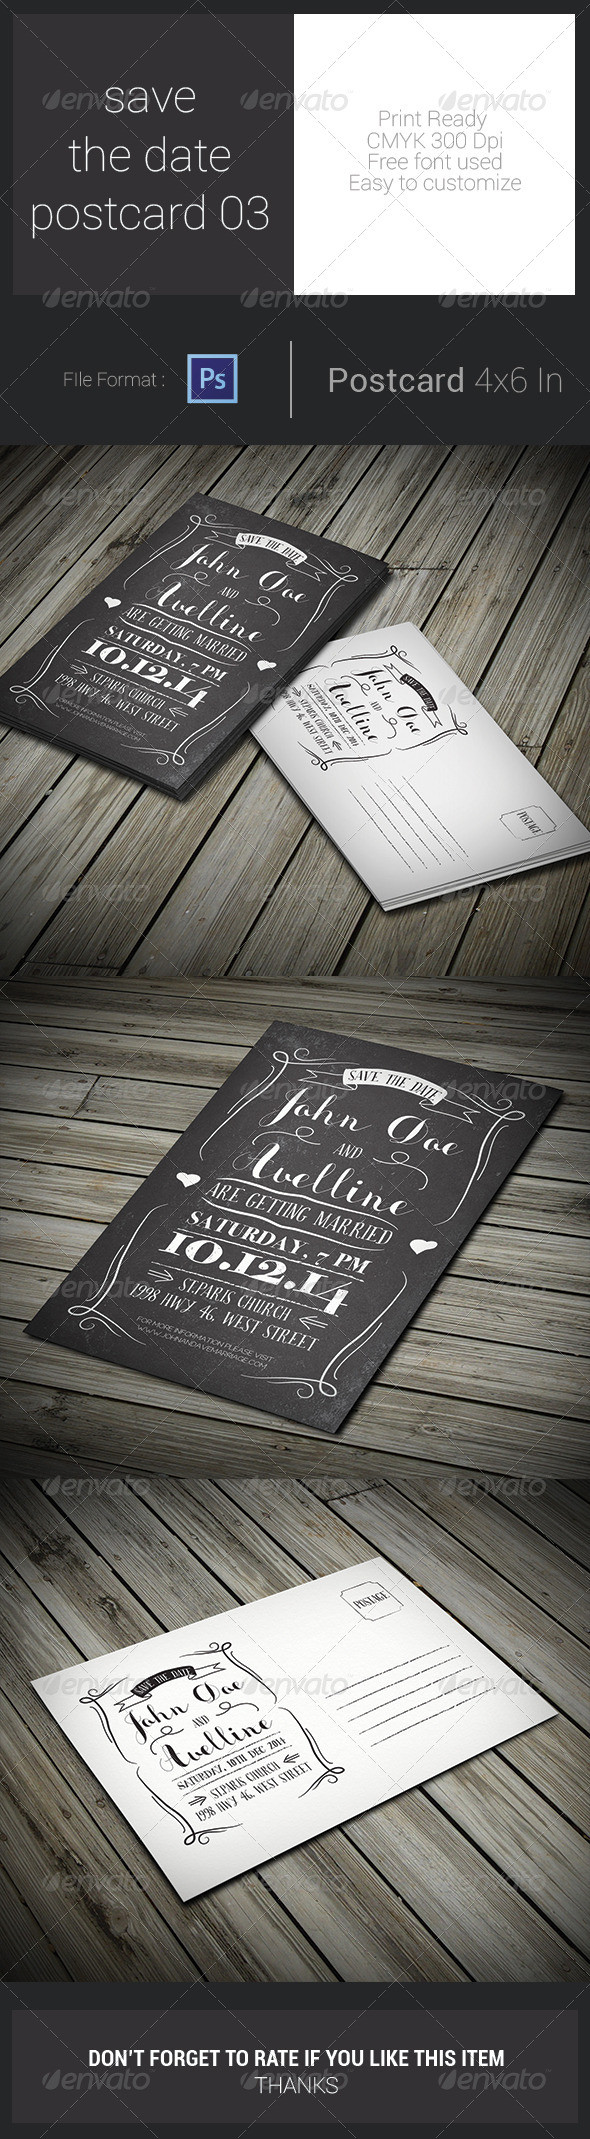 GraphicRiver Save The Date Postcard 03 7763510